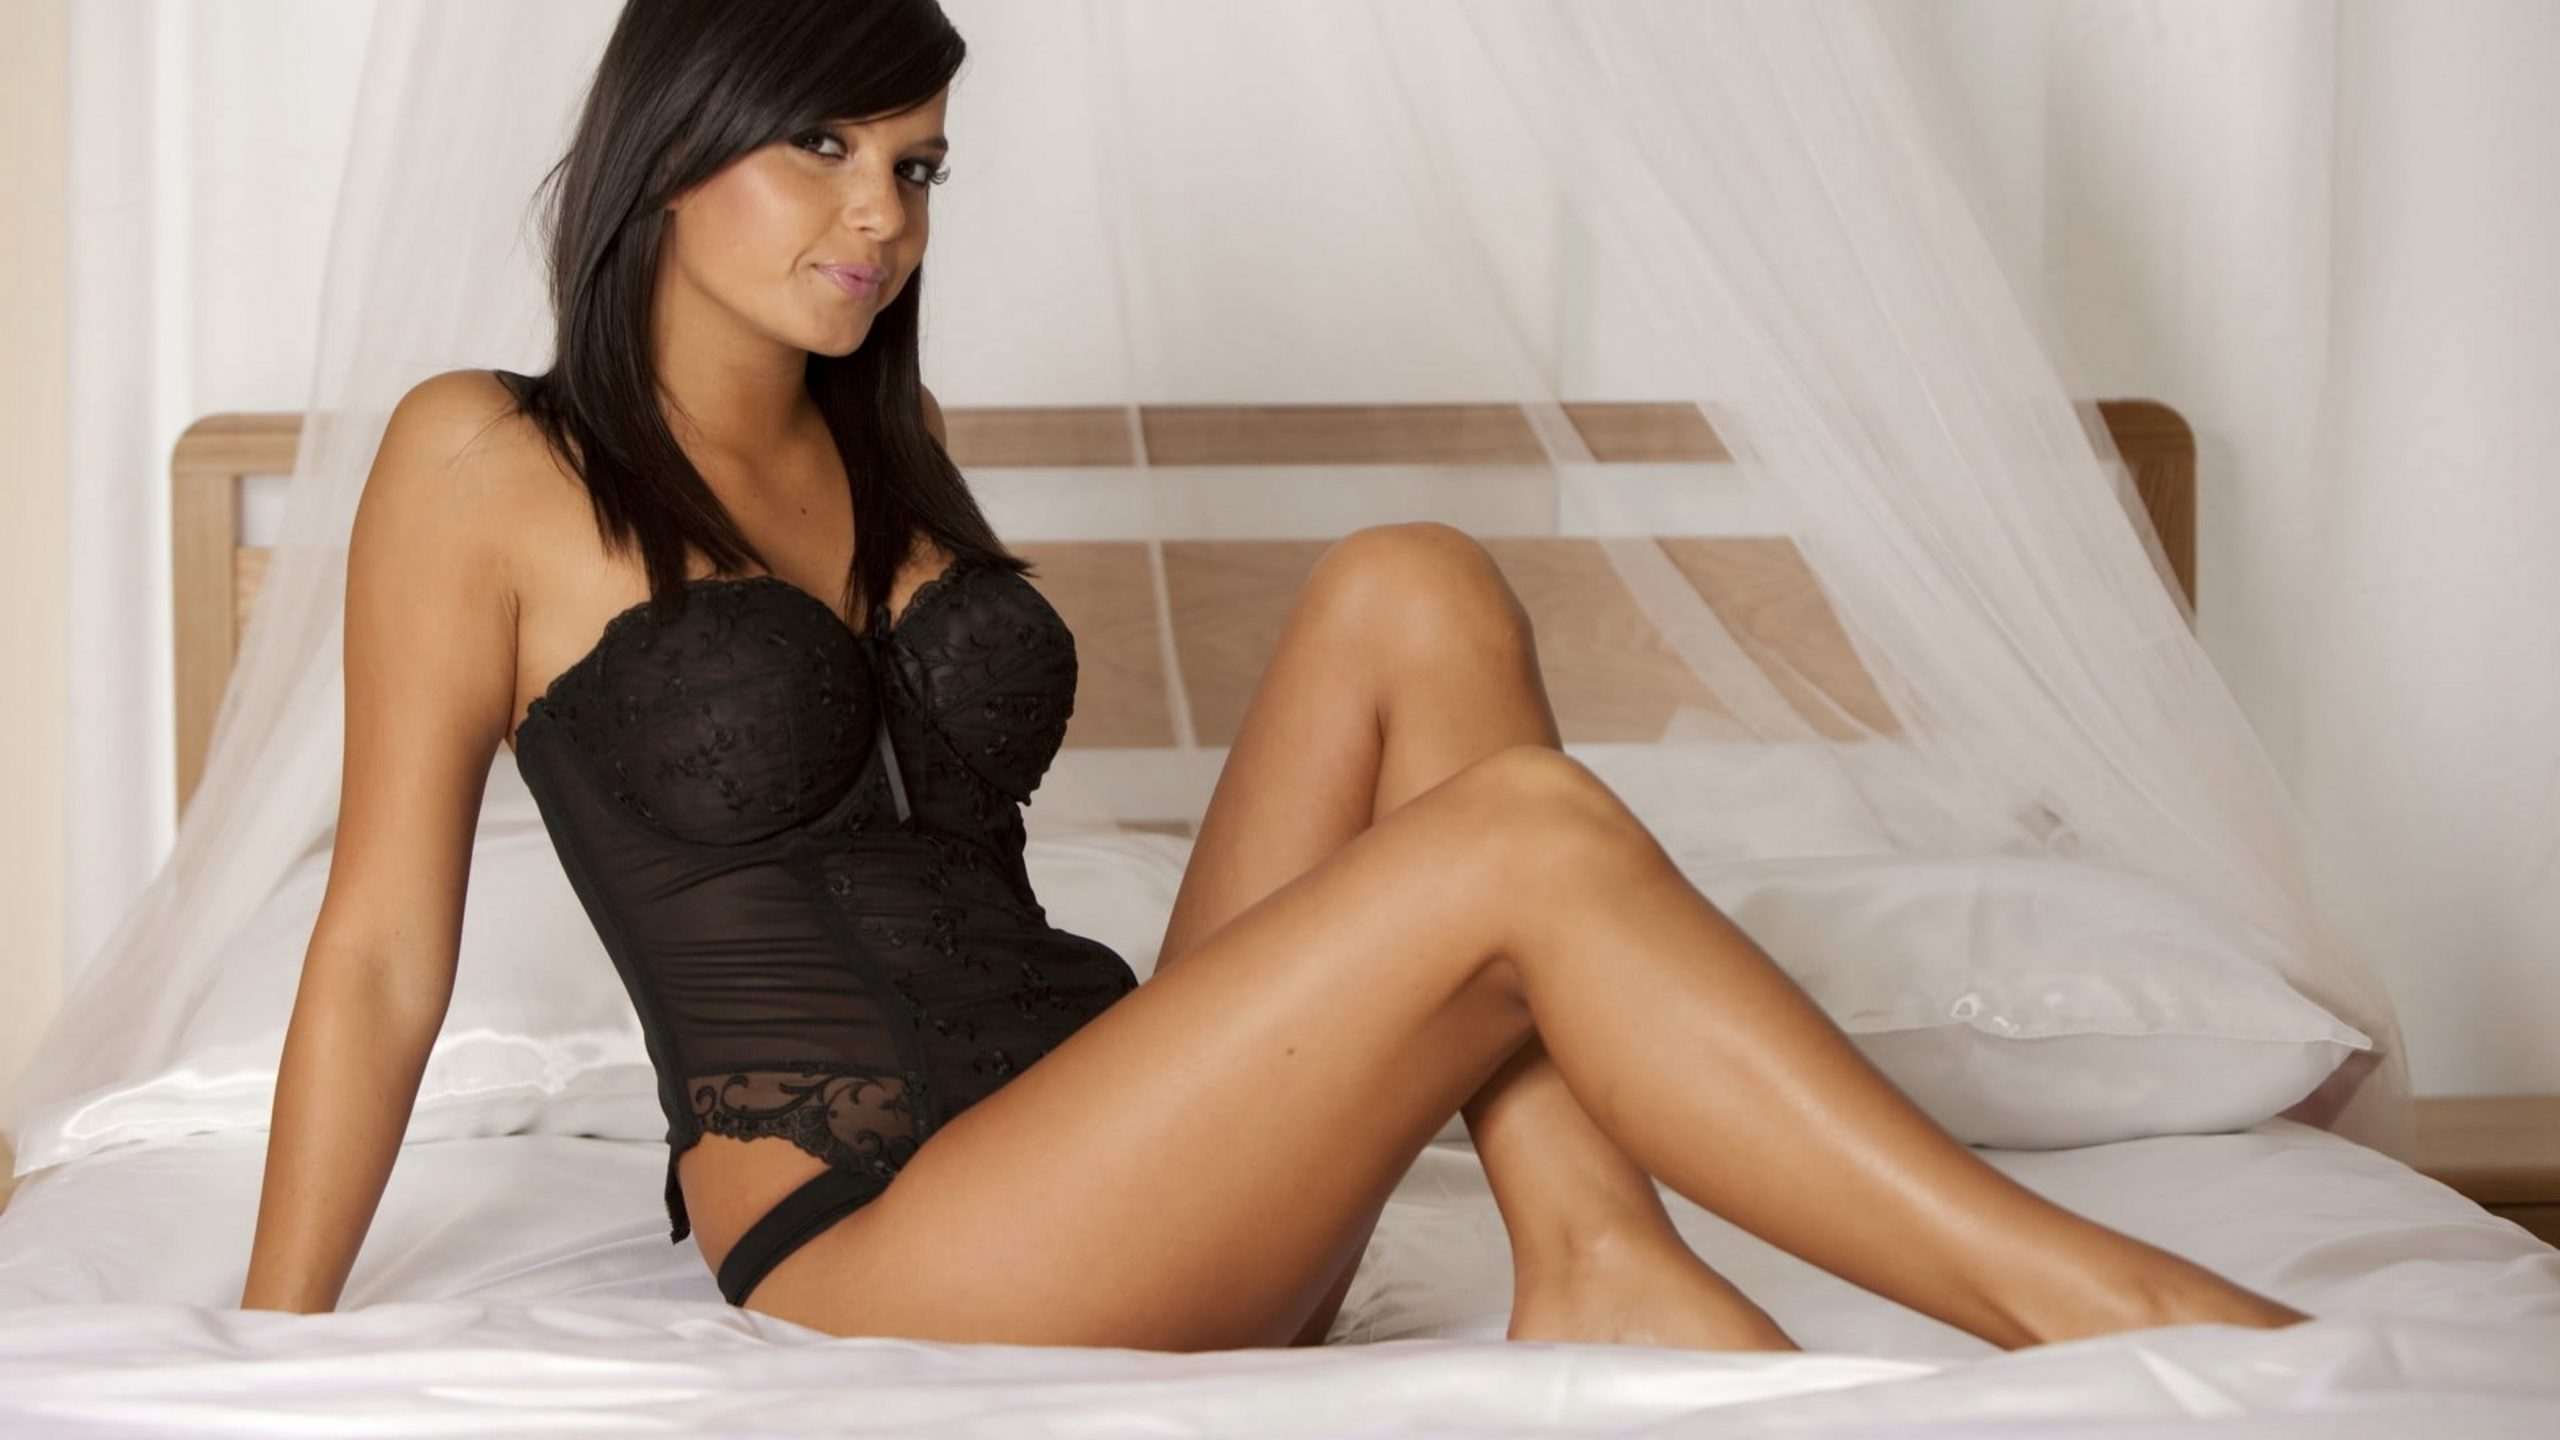 Erotic London escorts and cheap massages made me so delighted